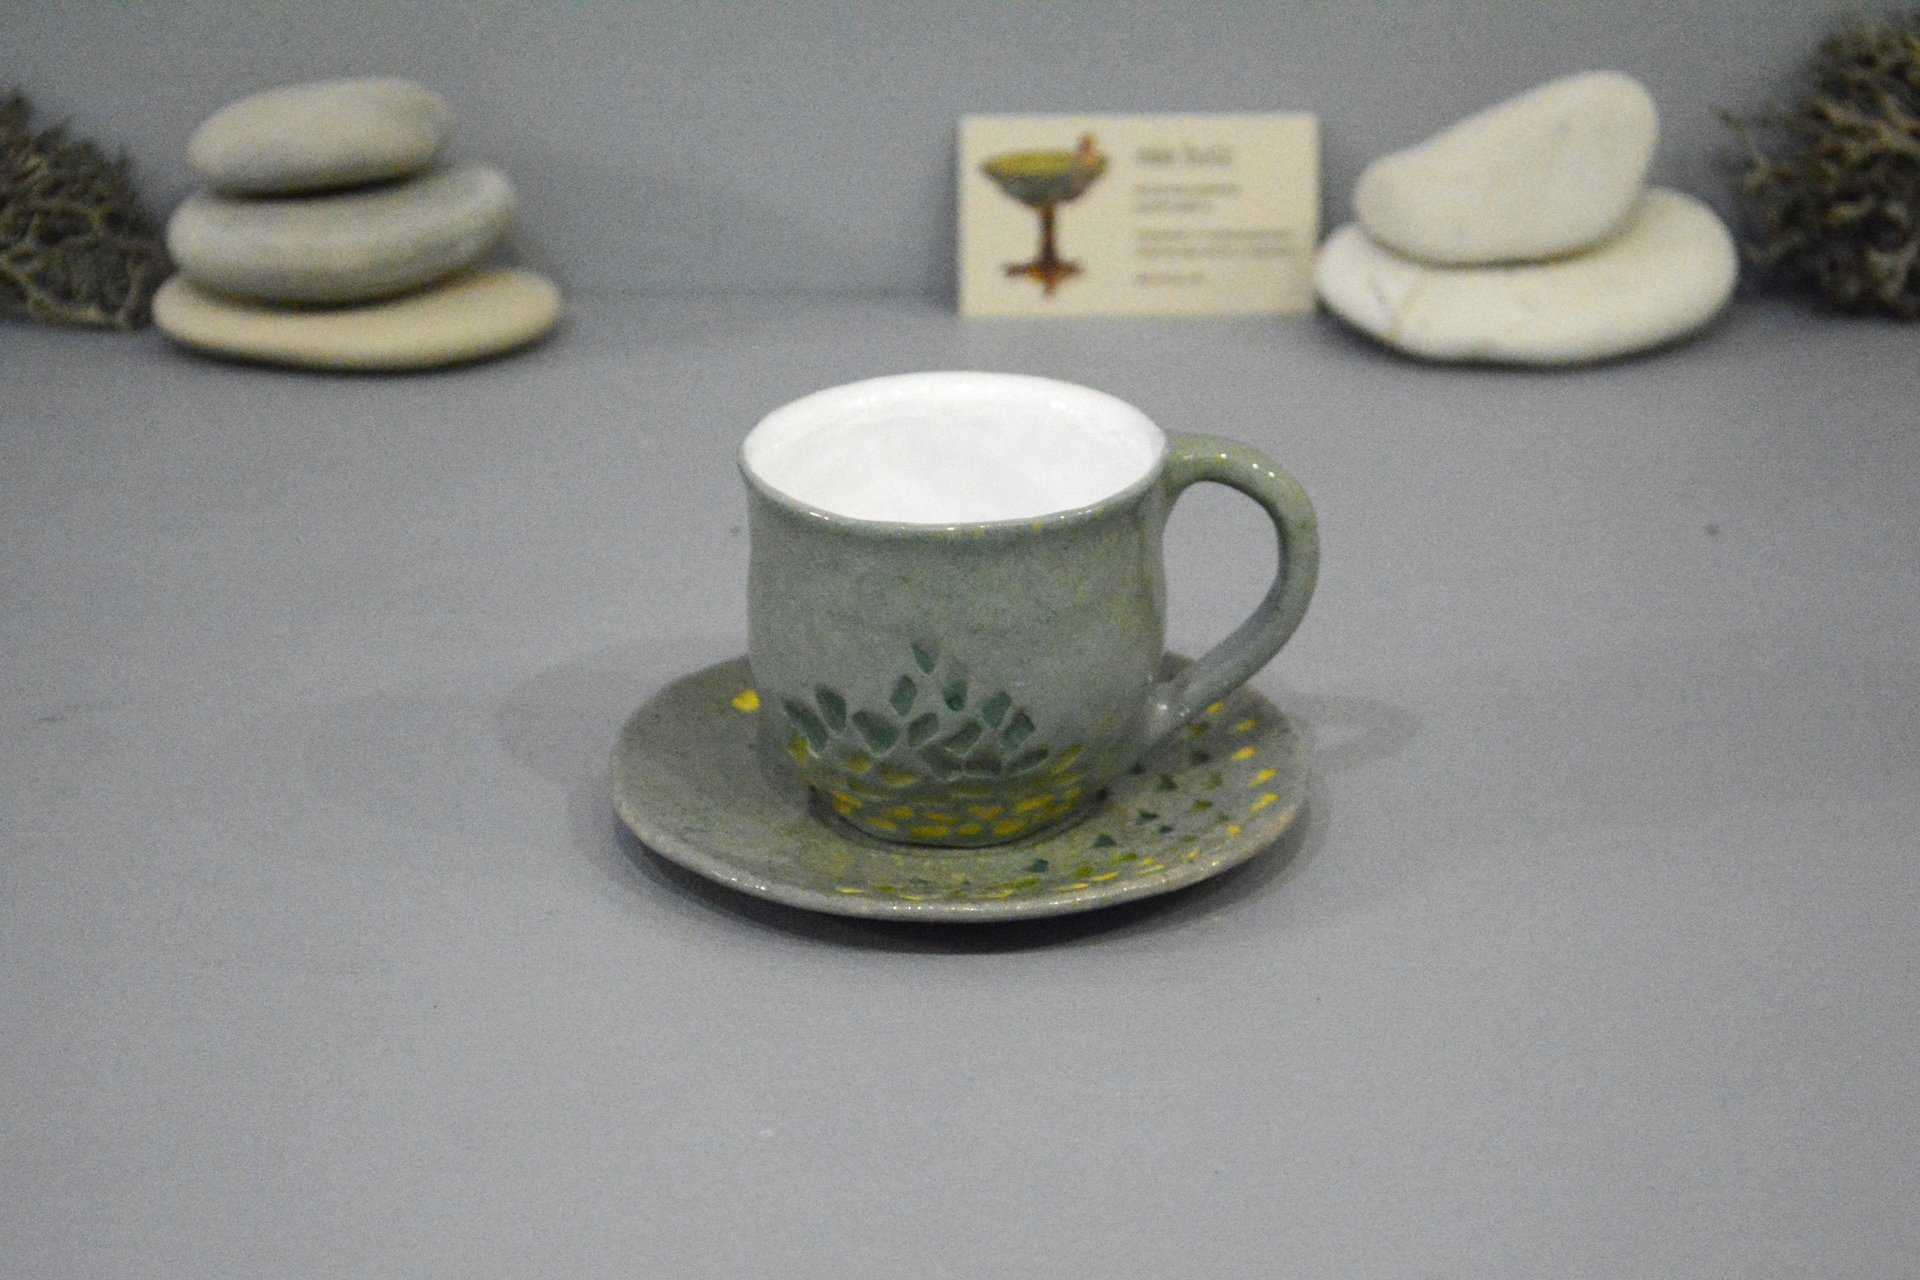 Gray cup for tea or coffee, height - 7 cm, volume - 220 ml, photo 1 of 8.